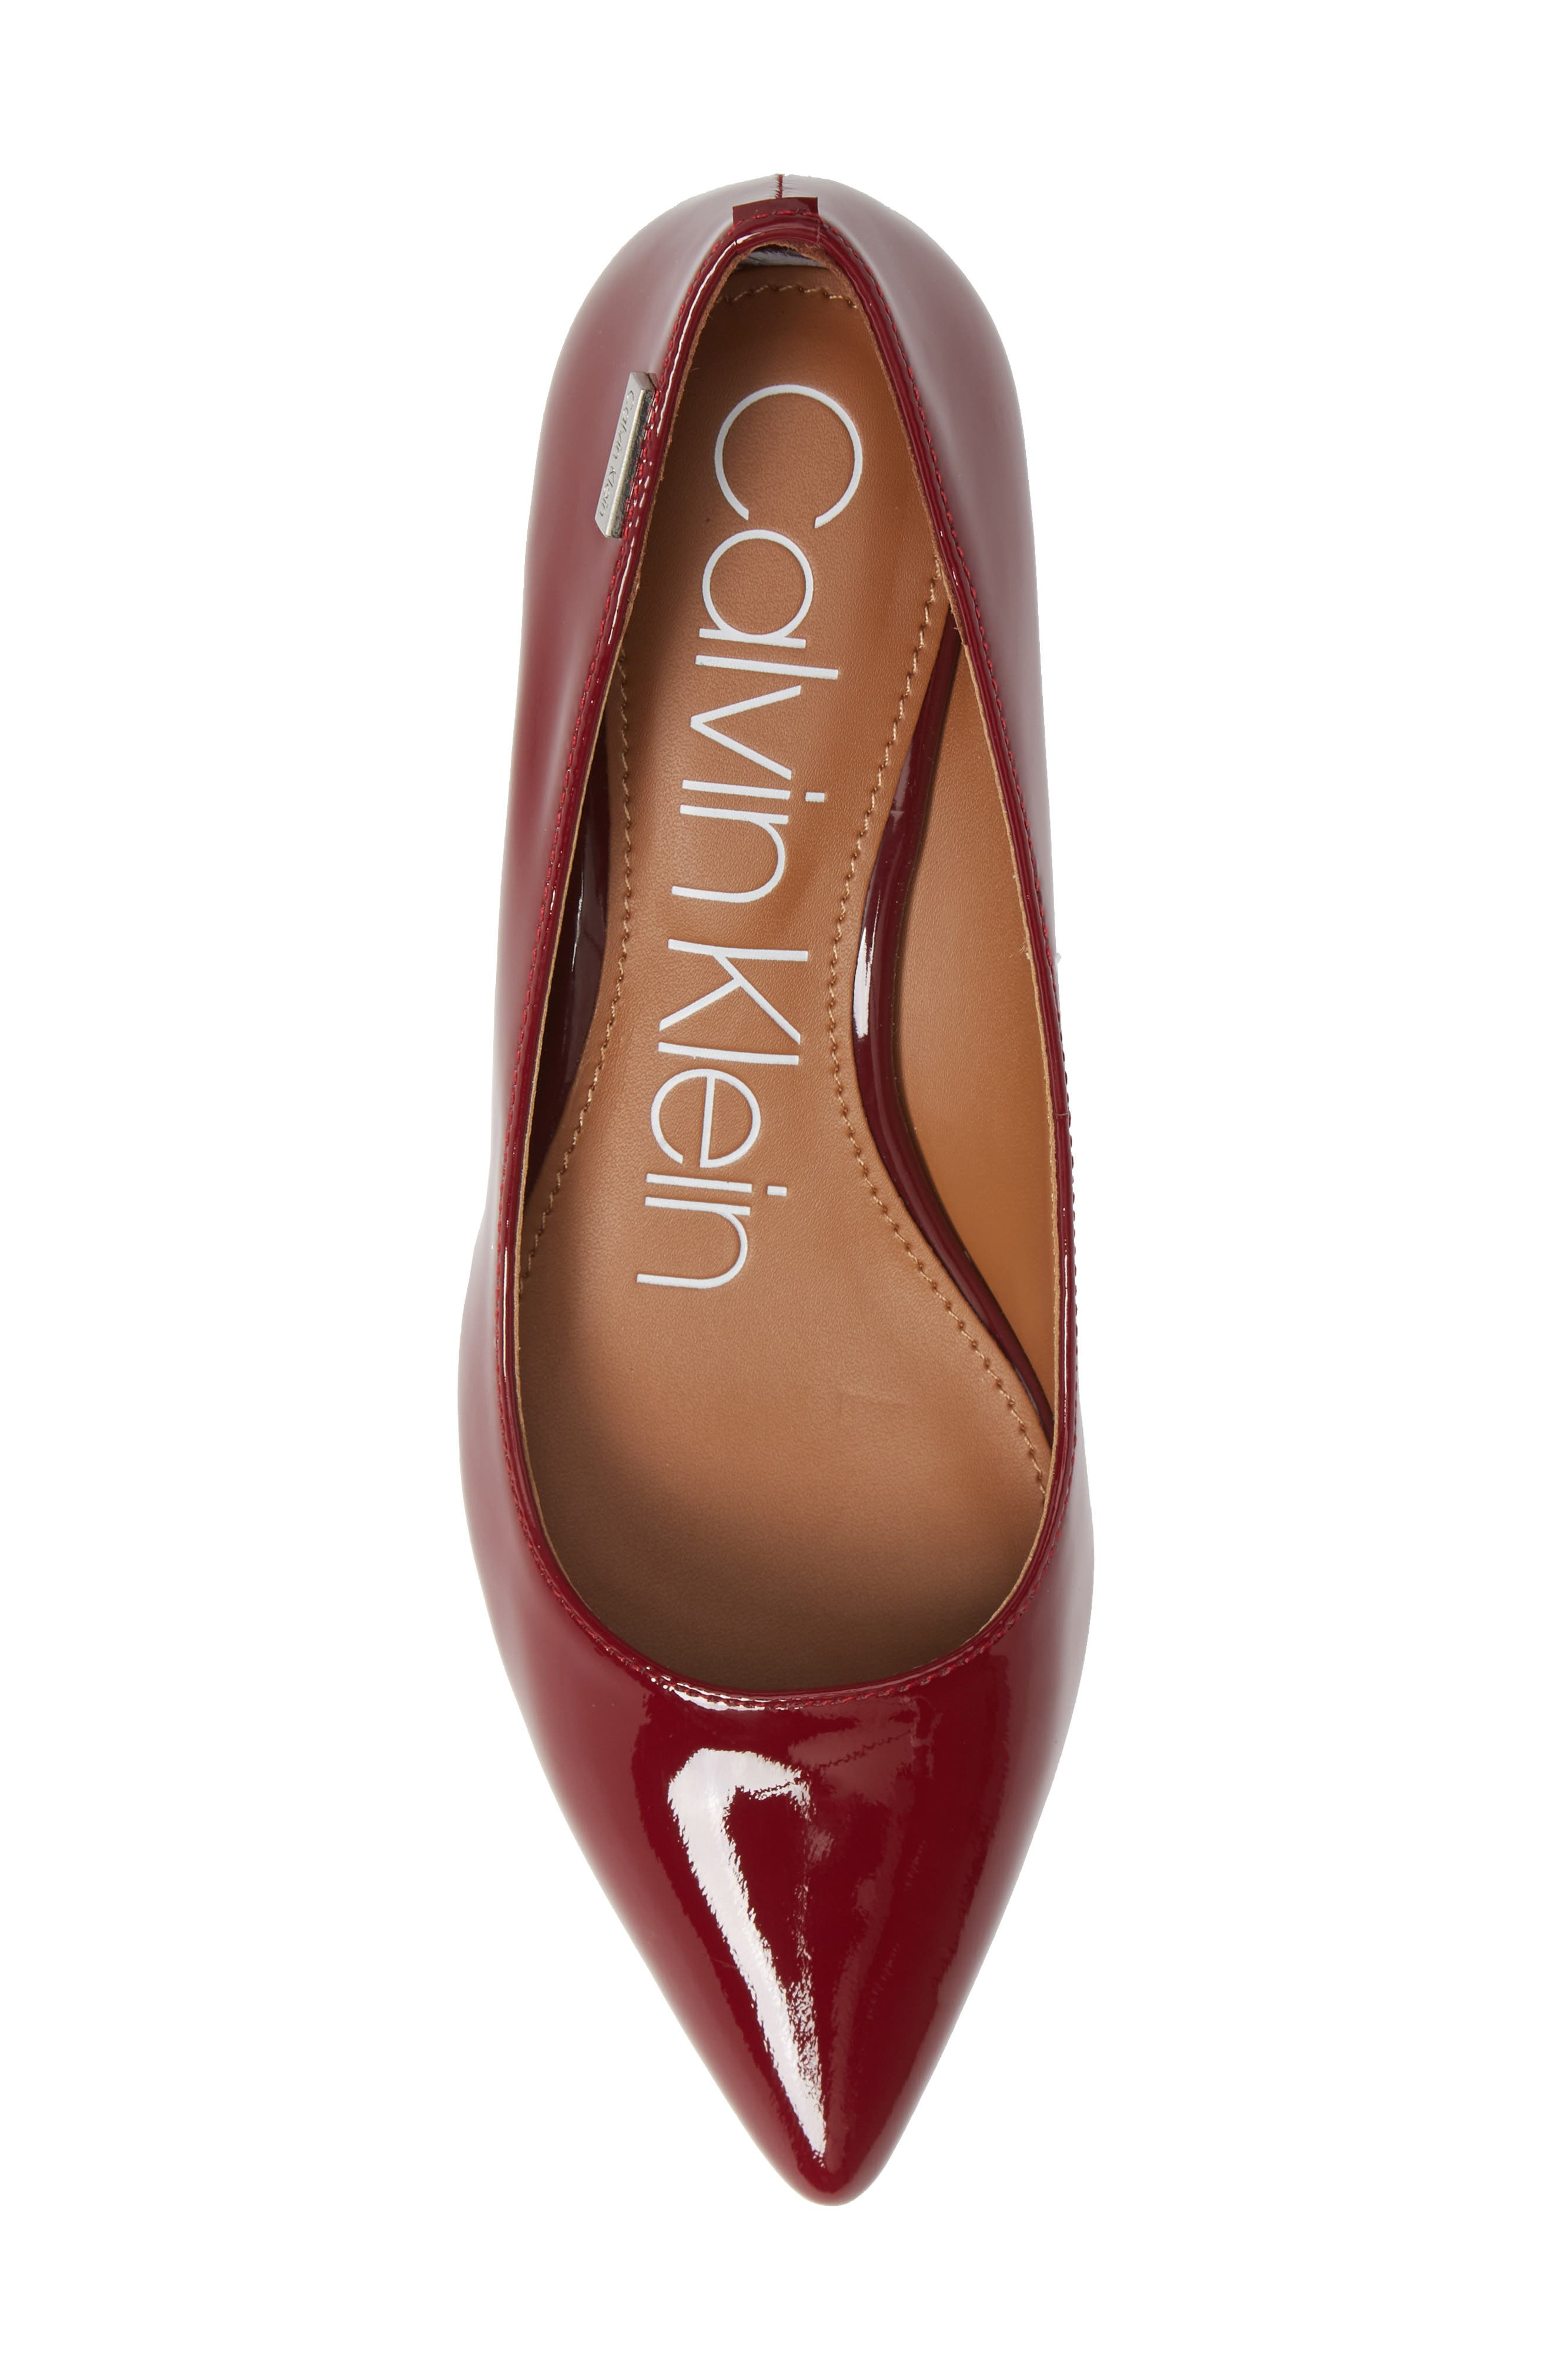 'Germina' Pointy Toe Wedge,                             Alternate thumbnail 5, color,                             Red Rock Patent